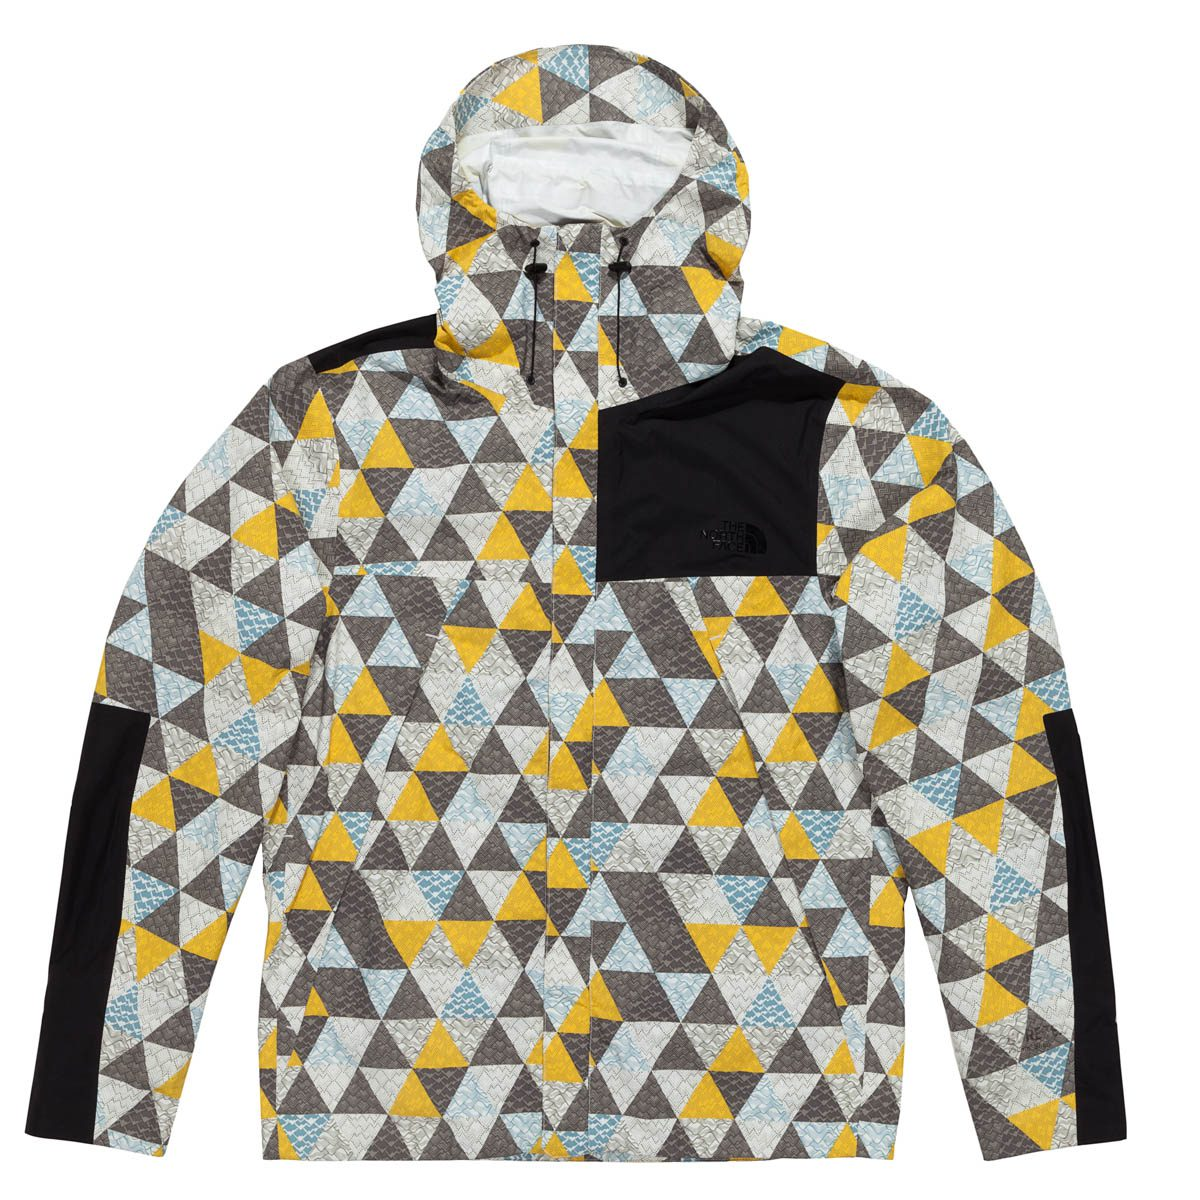 THE-NORTH-FACE-M1990-MOUNTAIN-JACKET-ONE-COLOUR-WAY2.jpg